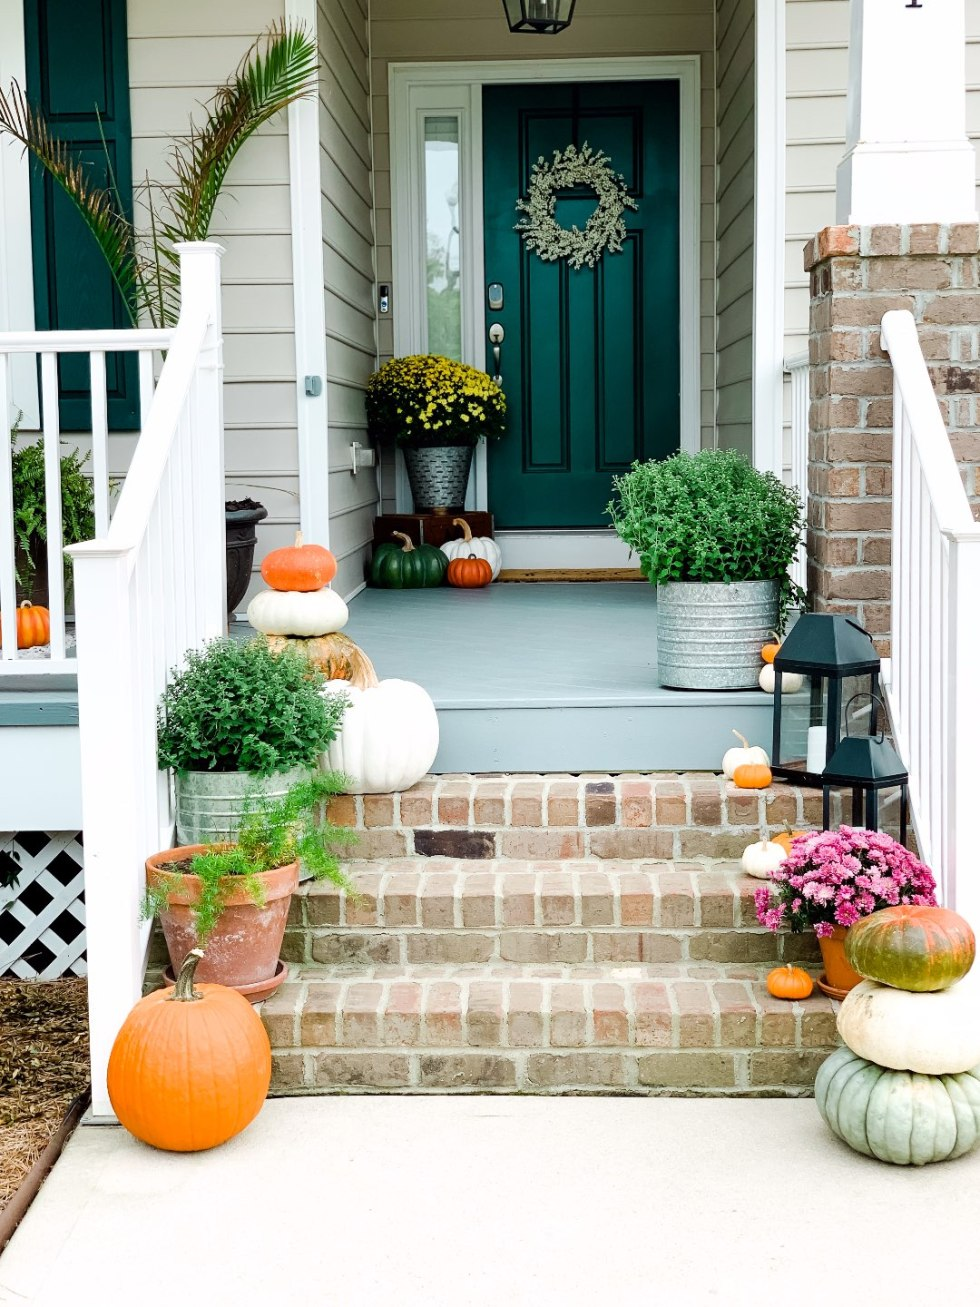 "Our Inviting and Cozy Fall Front Porch Decor Ideas - I'm Fixin' To - @mbg0112 | Our Inviting and Cozy Fall Front Porch Decor Ideas by popular North Carolina lifestyle blog, I'm Fixin' To: image of a front porch decorated with Target Smith and Hacken 12"" Iron Galvanized Planters, Target Threshold 22"" Artificial Berry Wreath White, pumpkins, Target Smart Living San Rafael II 15"" LED Solar Mission Outdoor Lanterns, mums, and green plants."